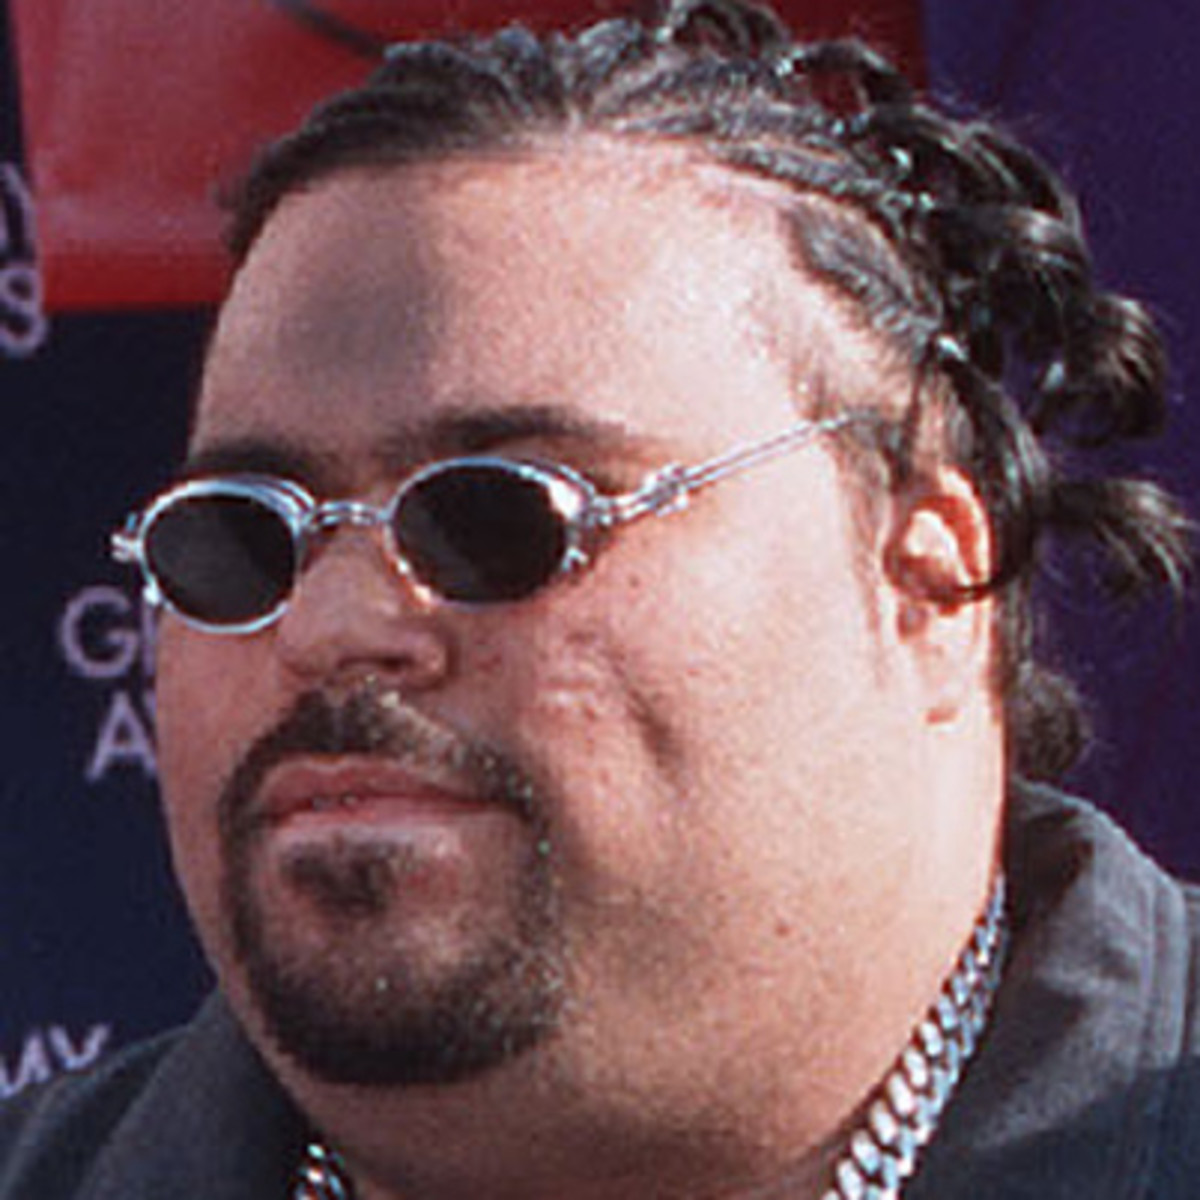 Big Pun Rapper